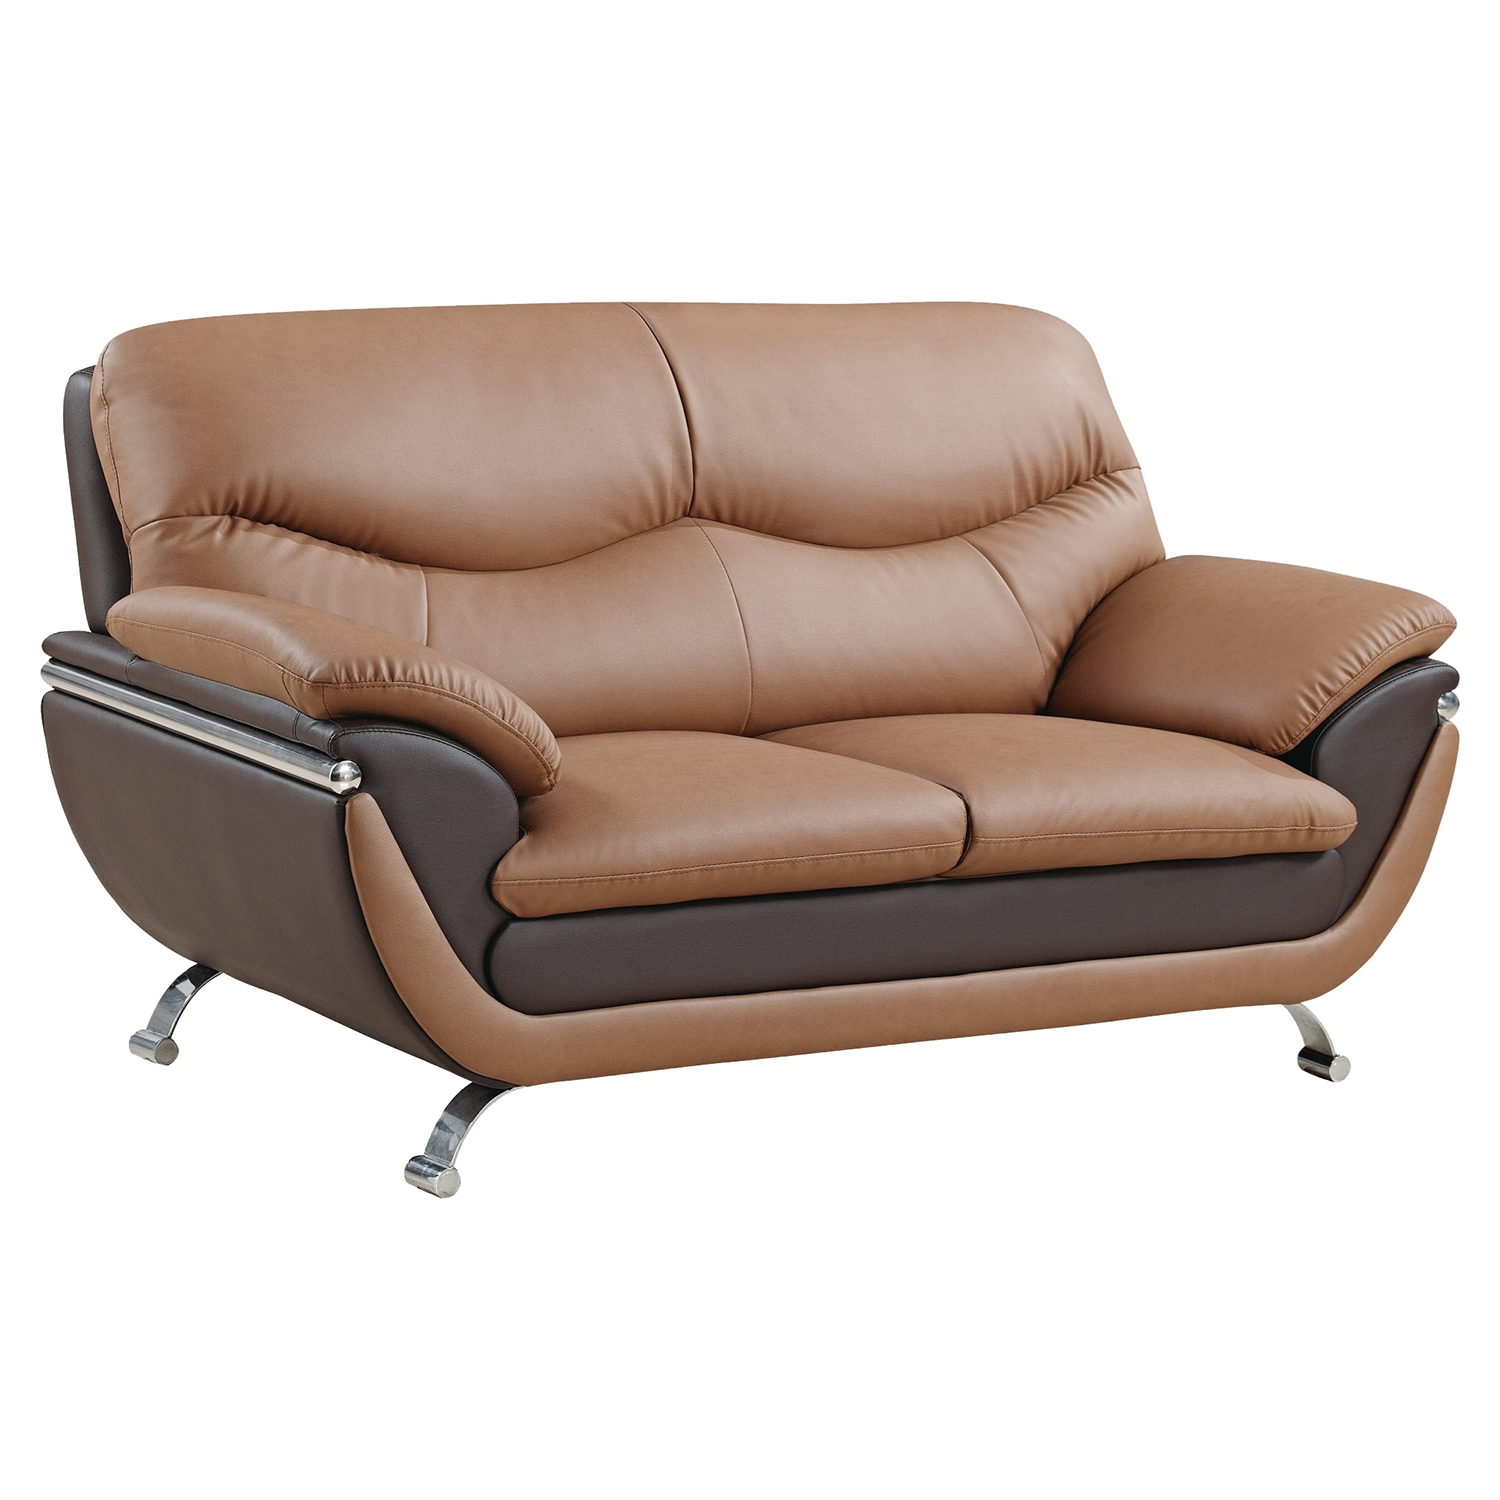 Loveseat - Light Brown and Dark Brown Leather, Chrome Legs